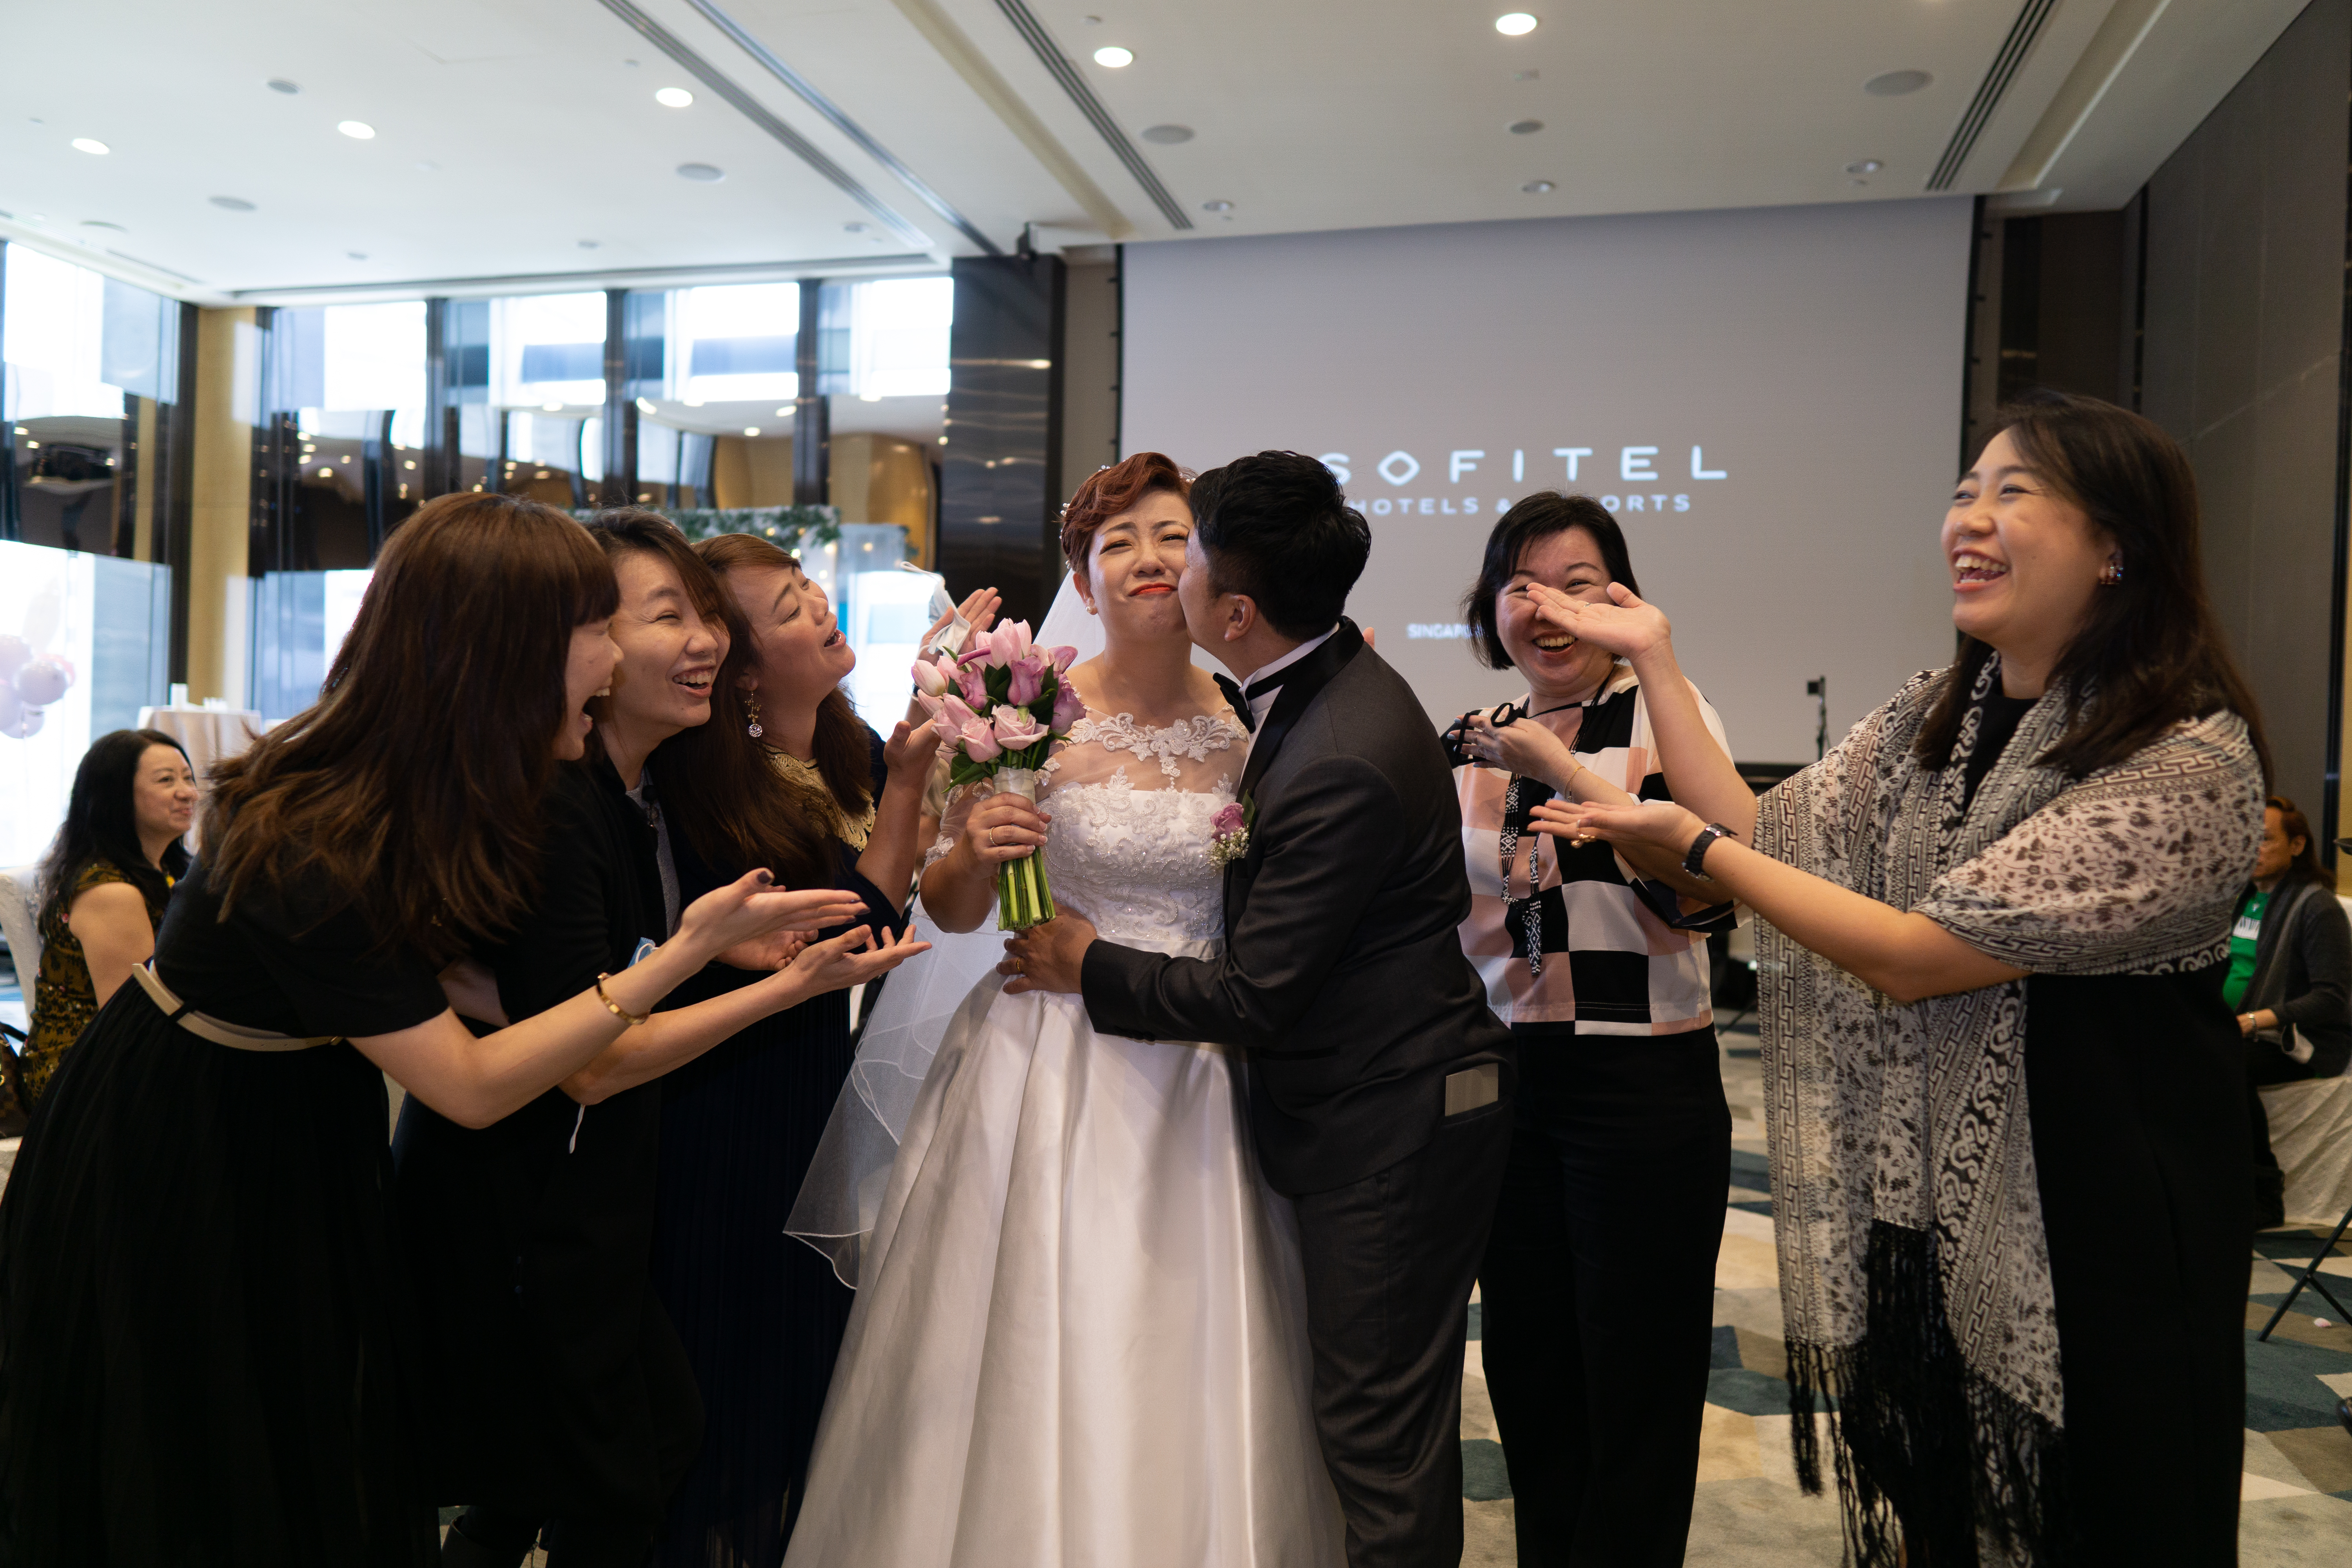 Group photo with guests at a wedding in Sofitel City Centre Hotel at Tanjong Pagar